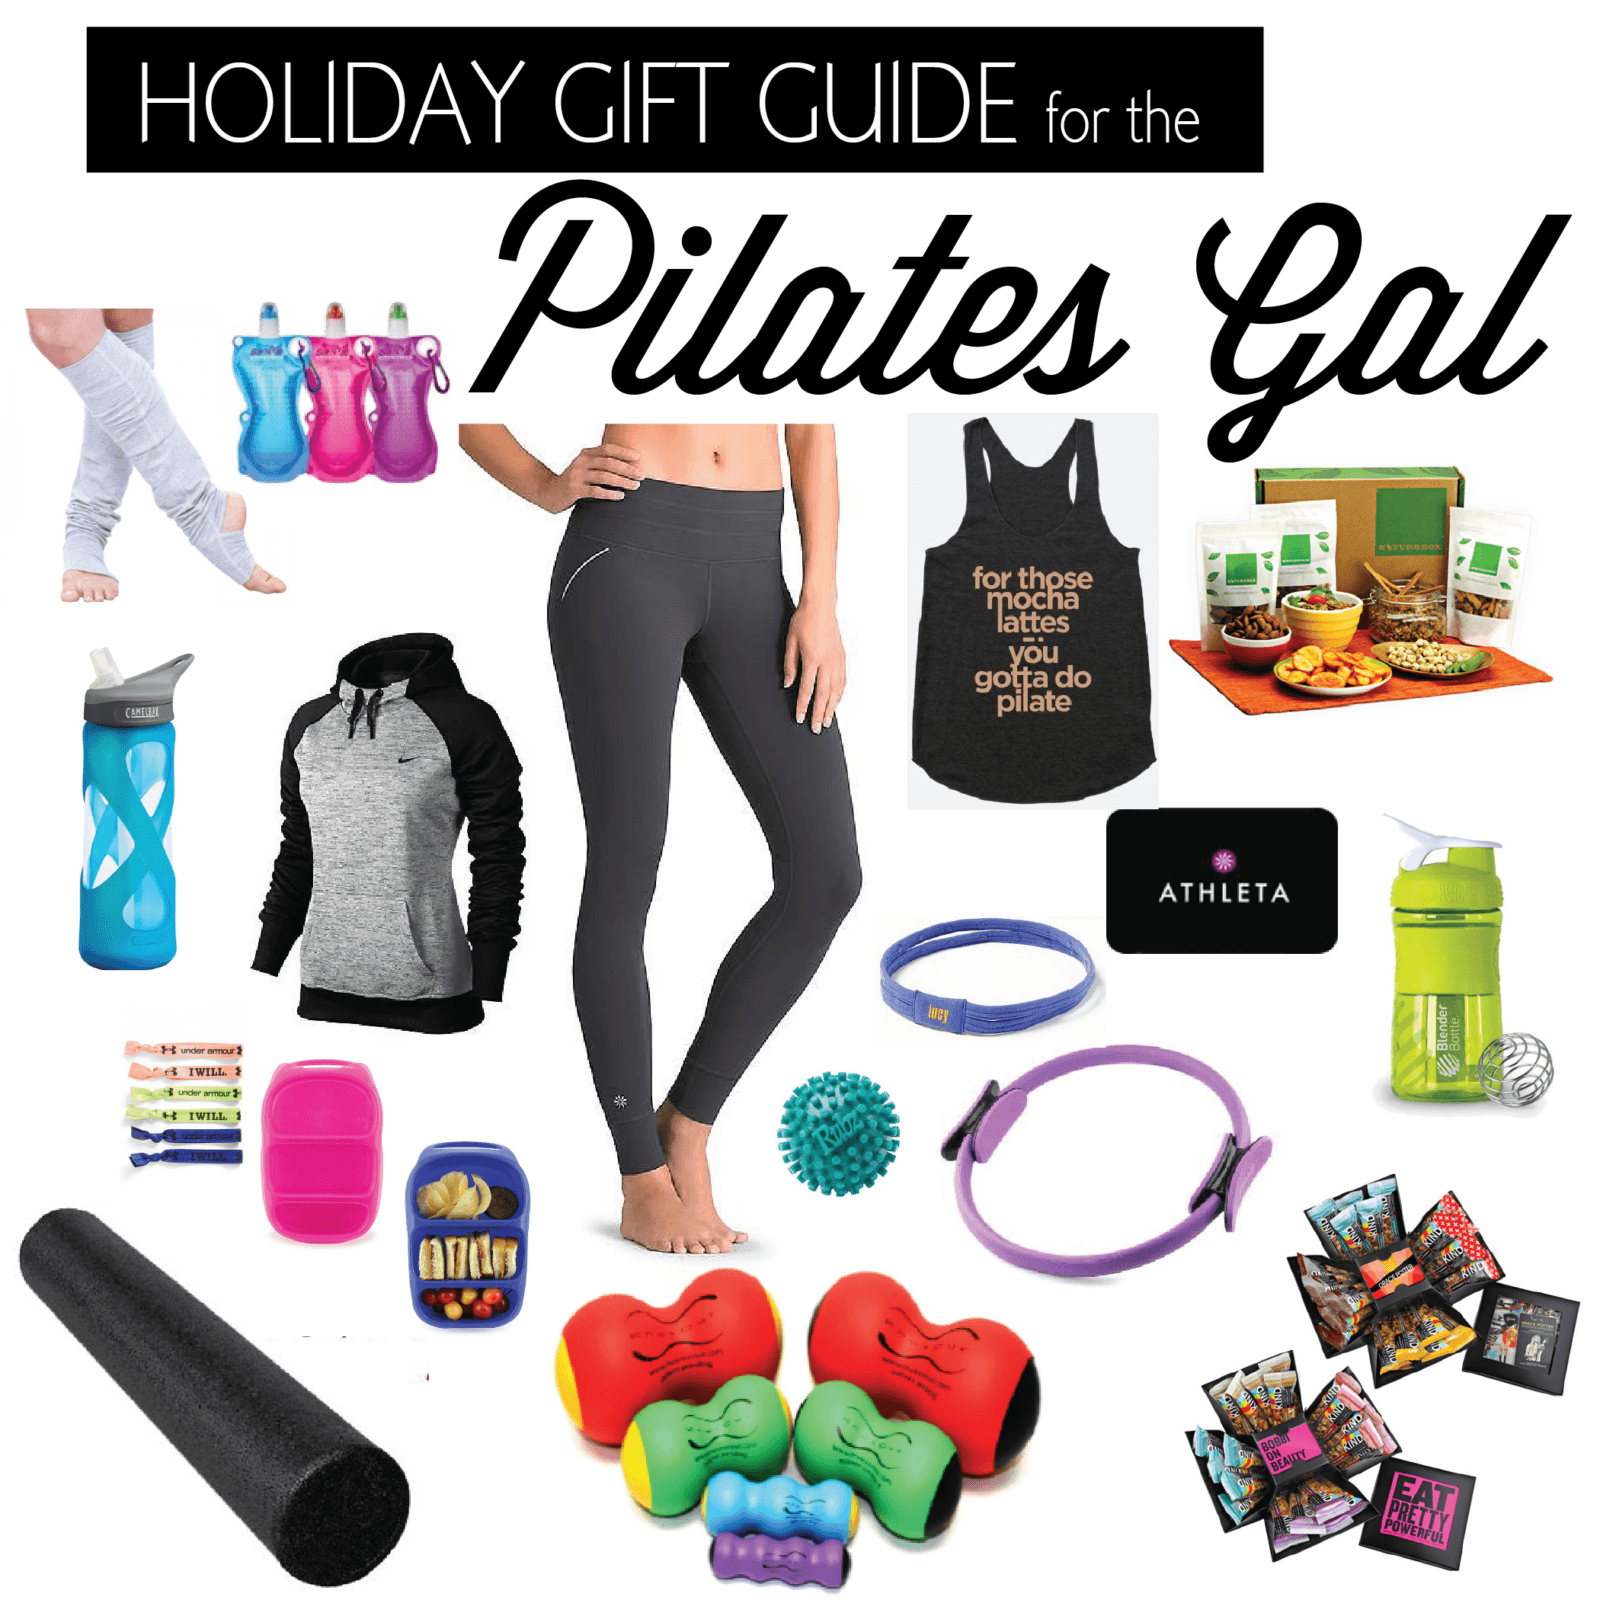 Holiday Gift Guide: The Pilates Gal